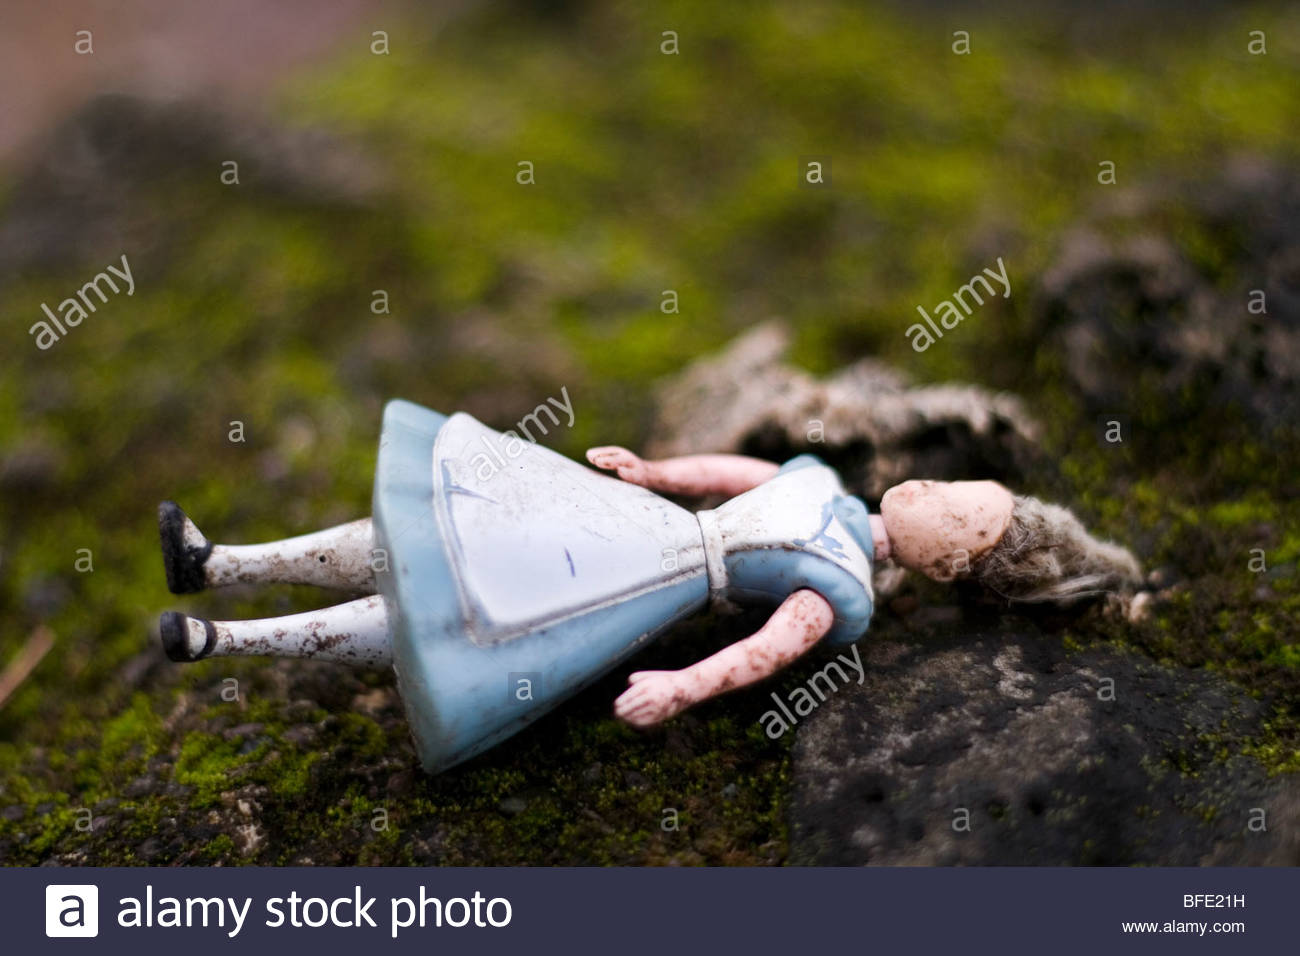 A thrown away doll on a rock. - Stock Image